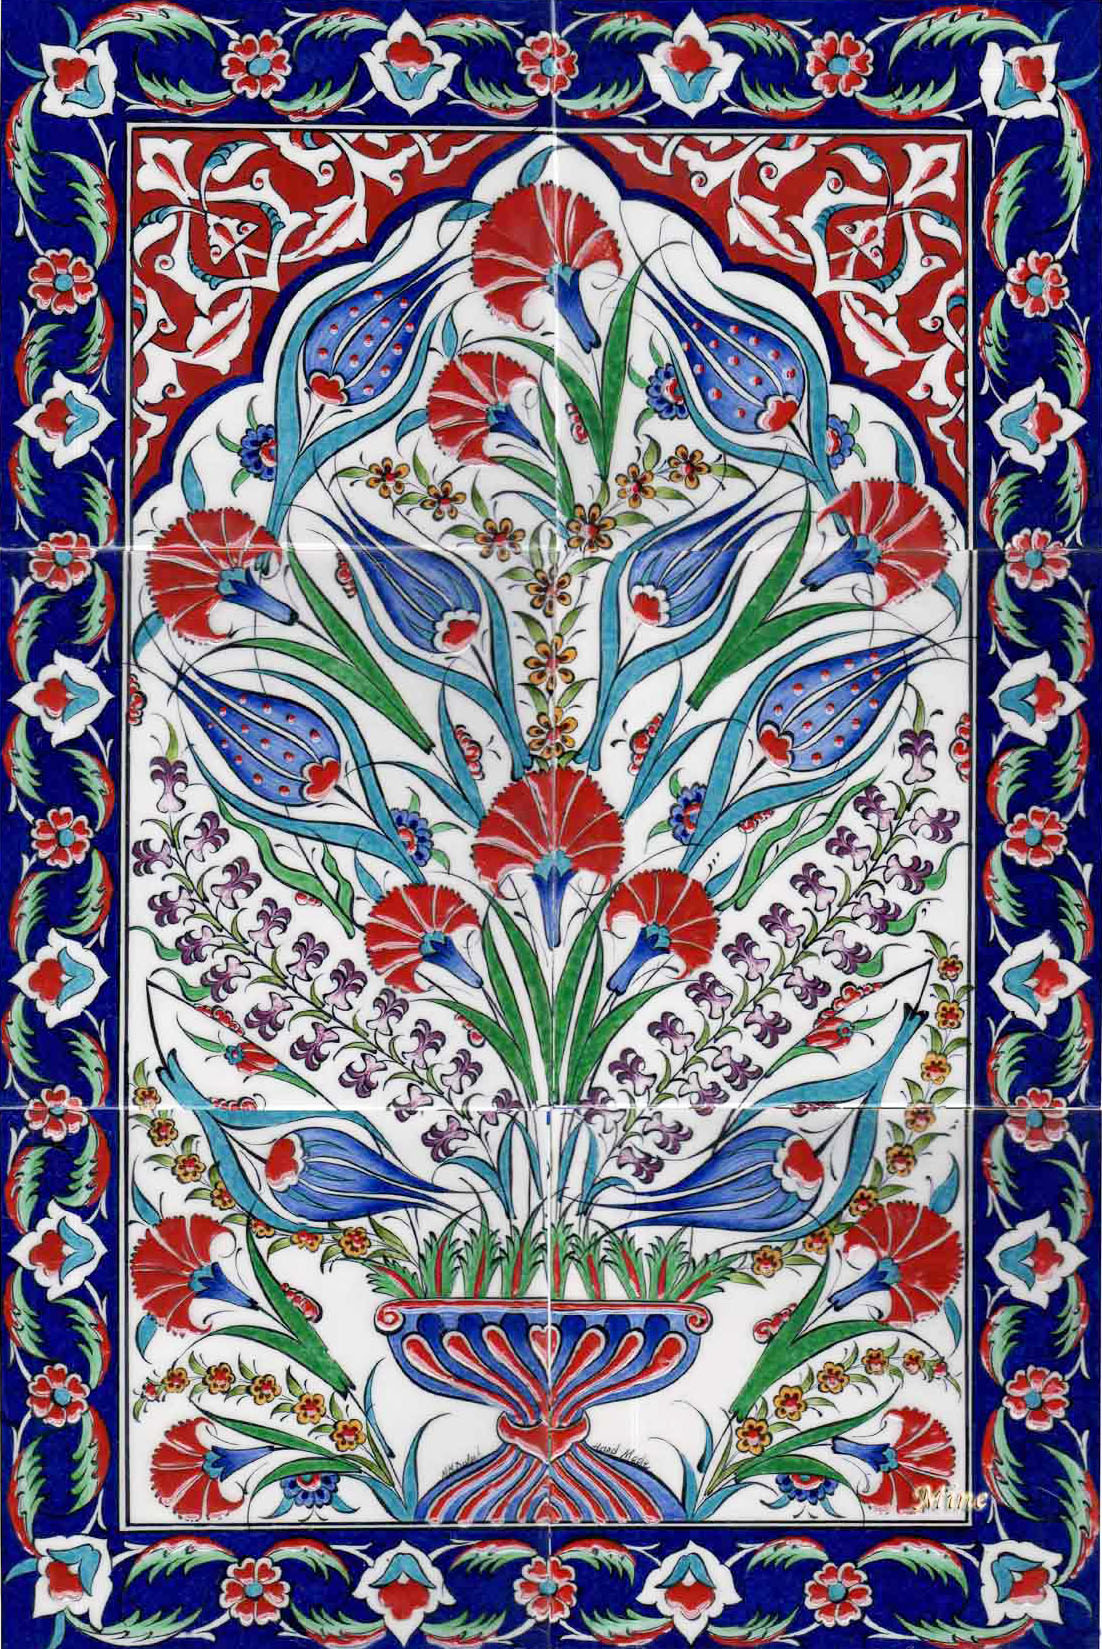 Ottoman Traditional Turkish Tiles Art Osmanlı 199 Ini Karo